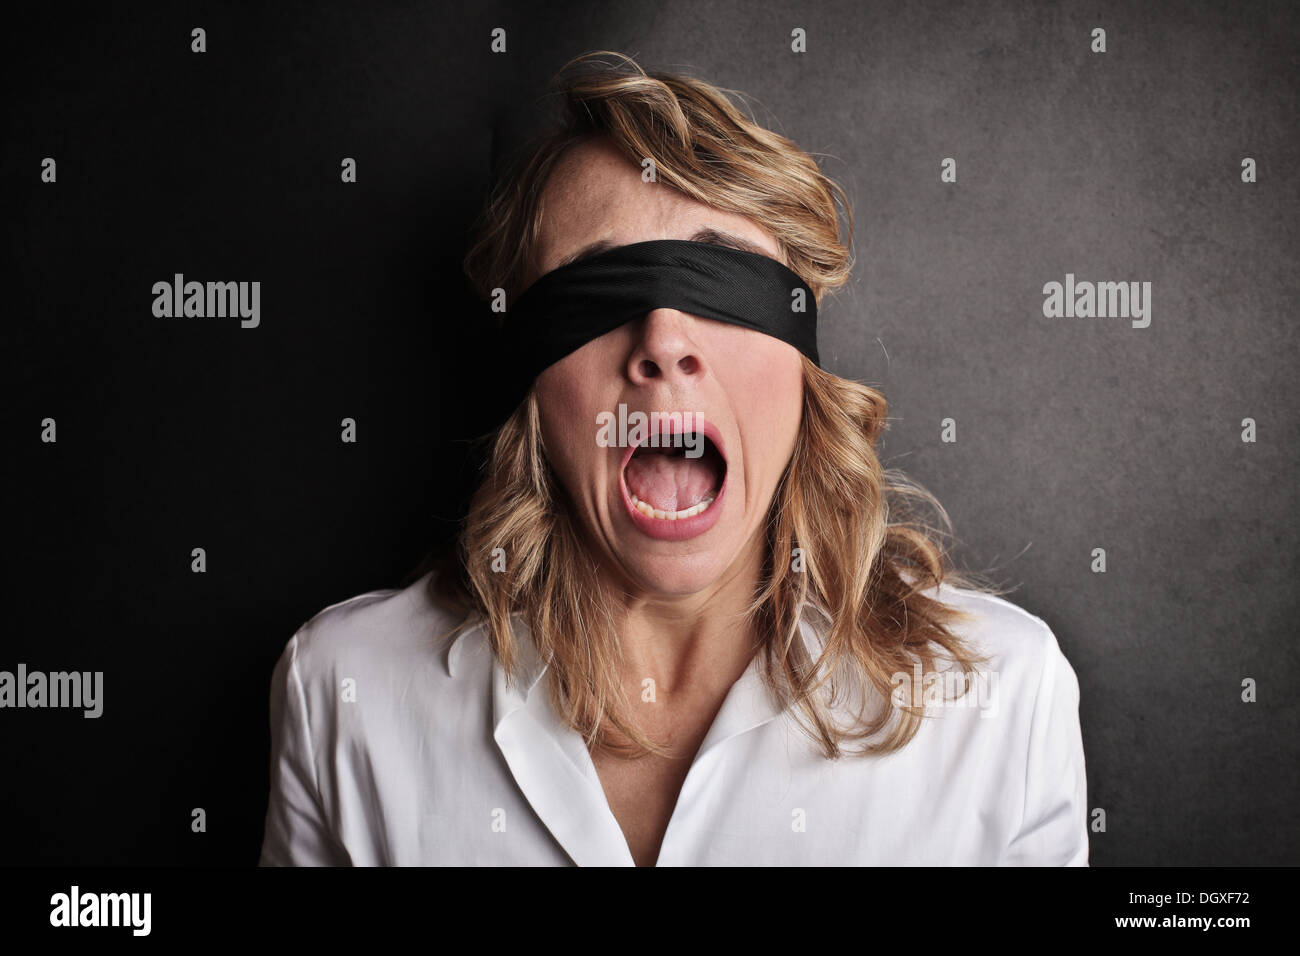 Scared woman blindfolded screaming - Stock Image